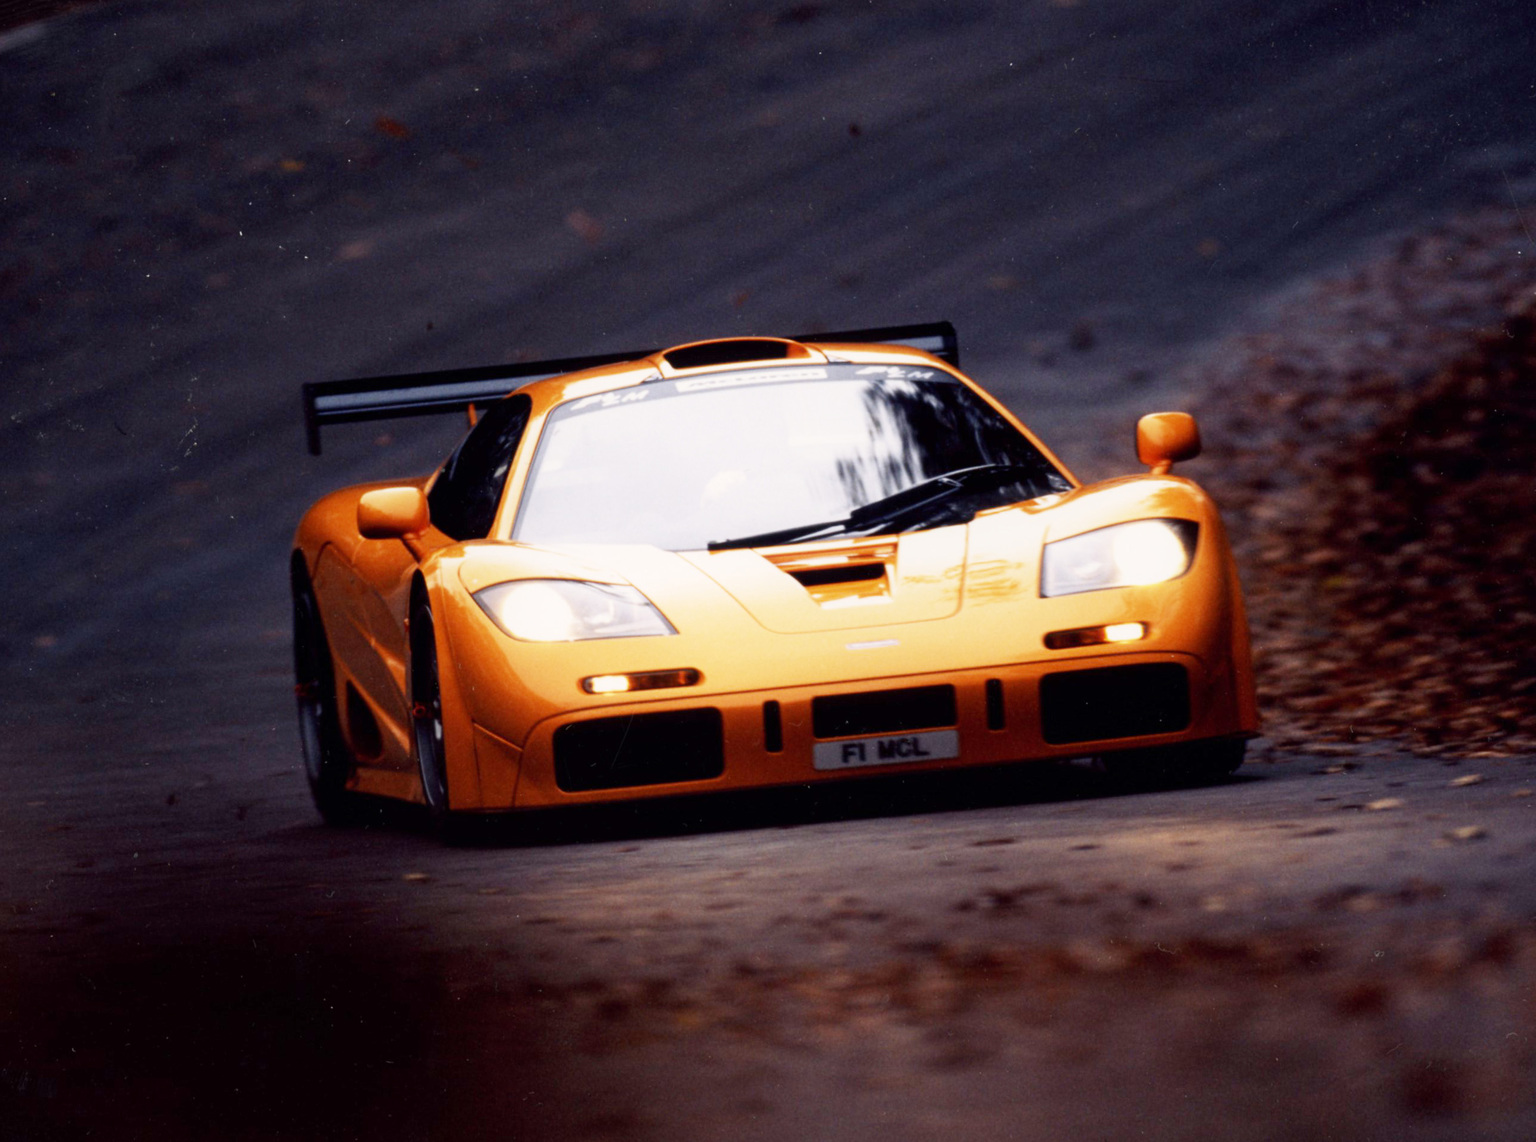 All In One Super Cars Wallpapers 1995 Mclaren F1 Lm Mclaren Supercars Net